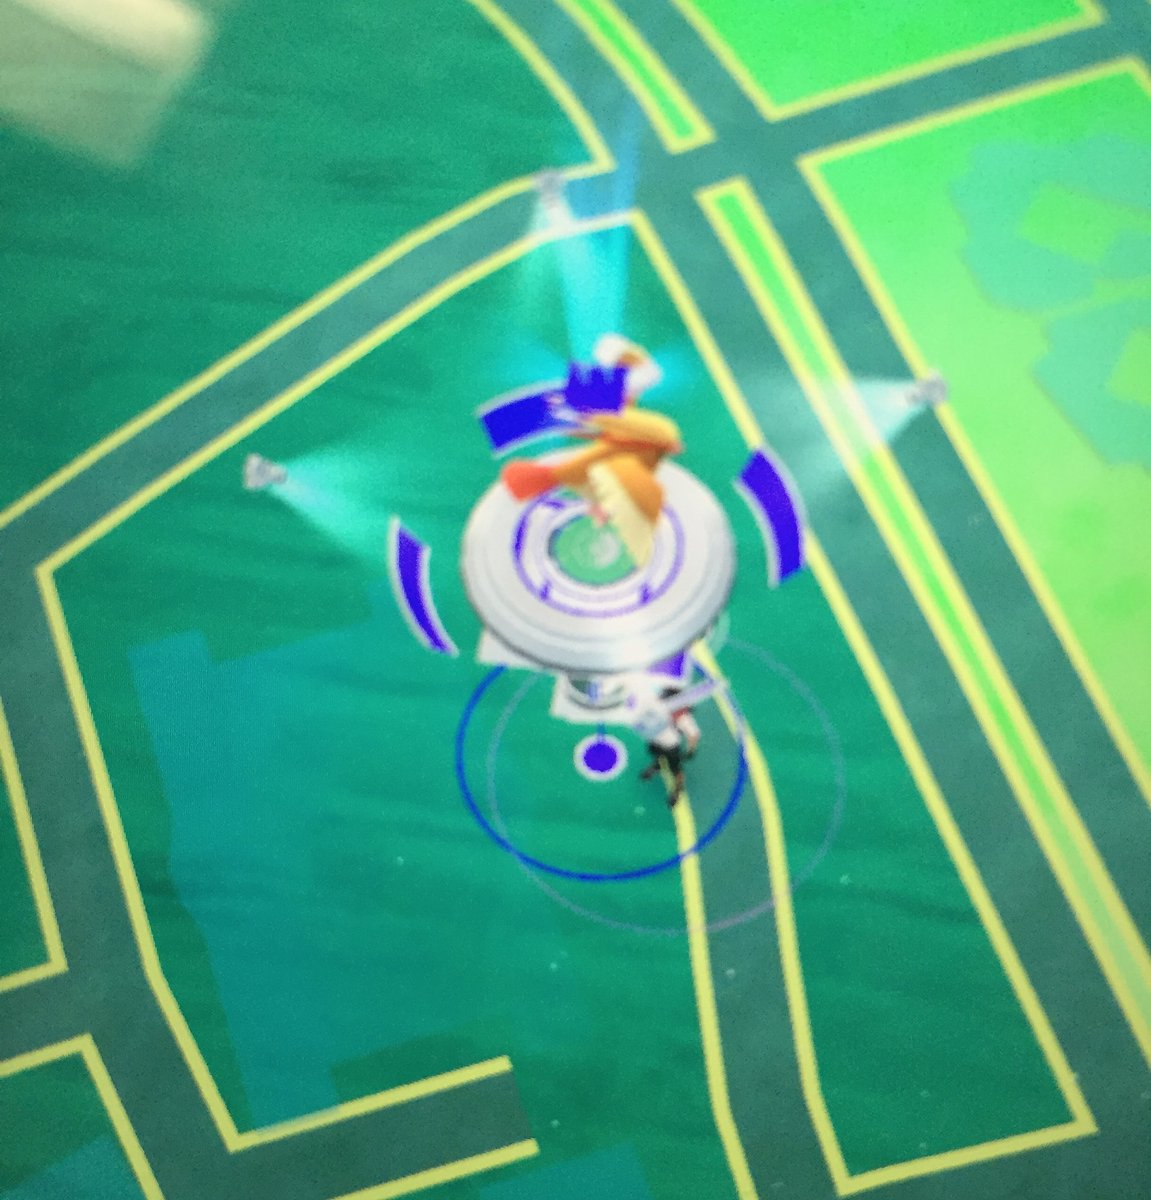 Hey #PokemonGo trainers... You have to be at level 5 to battle at the FPD gym - no need to enter the lobby #goodluck https://t.co/deoIaUGqcn